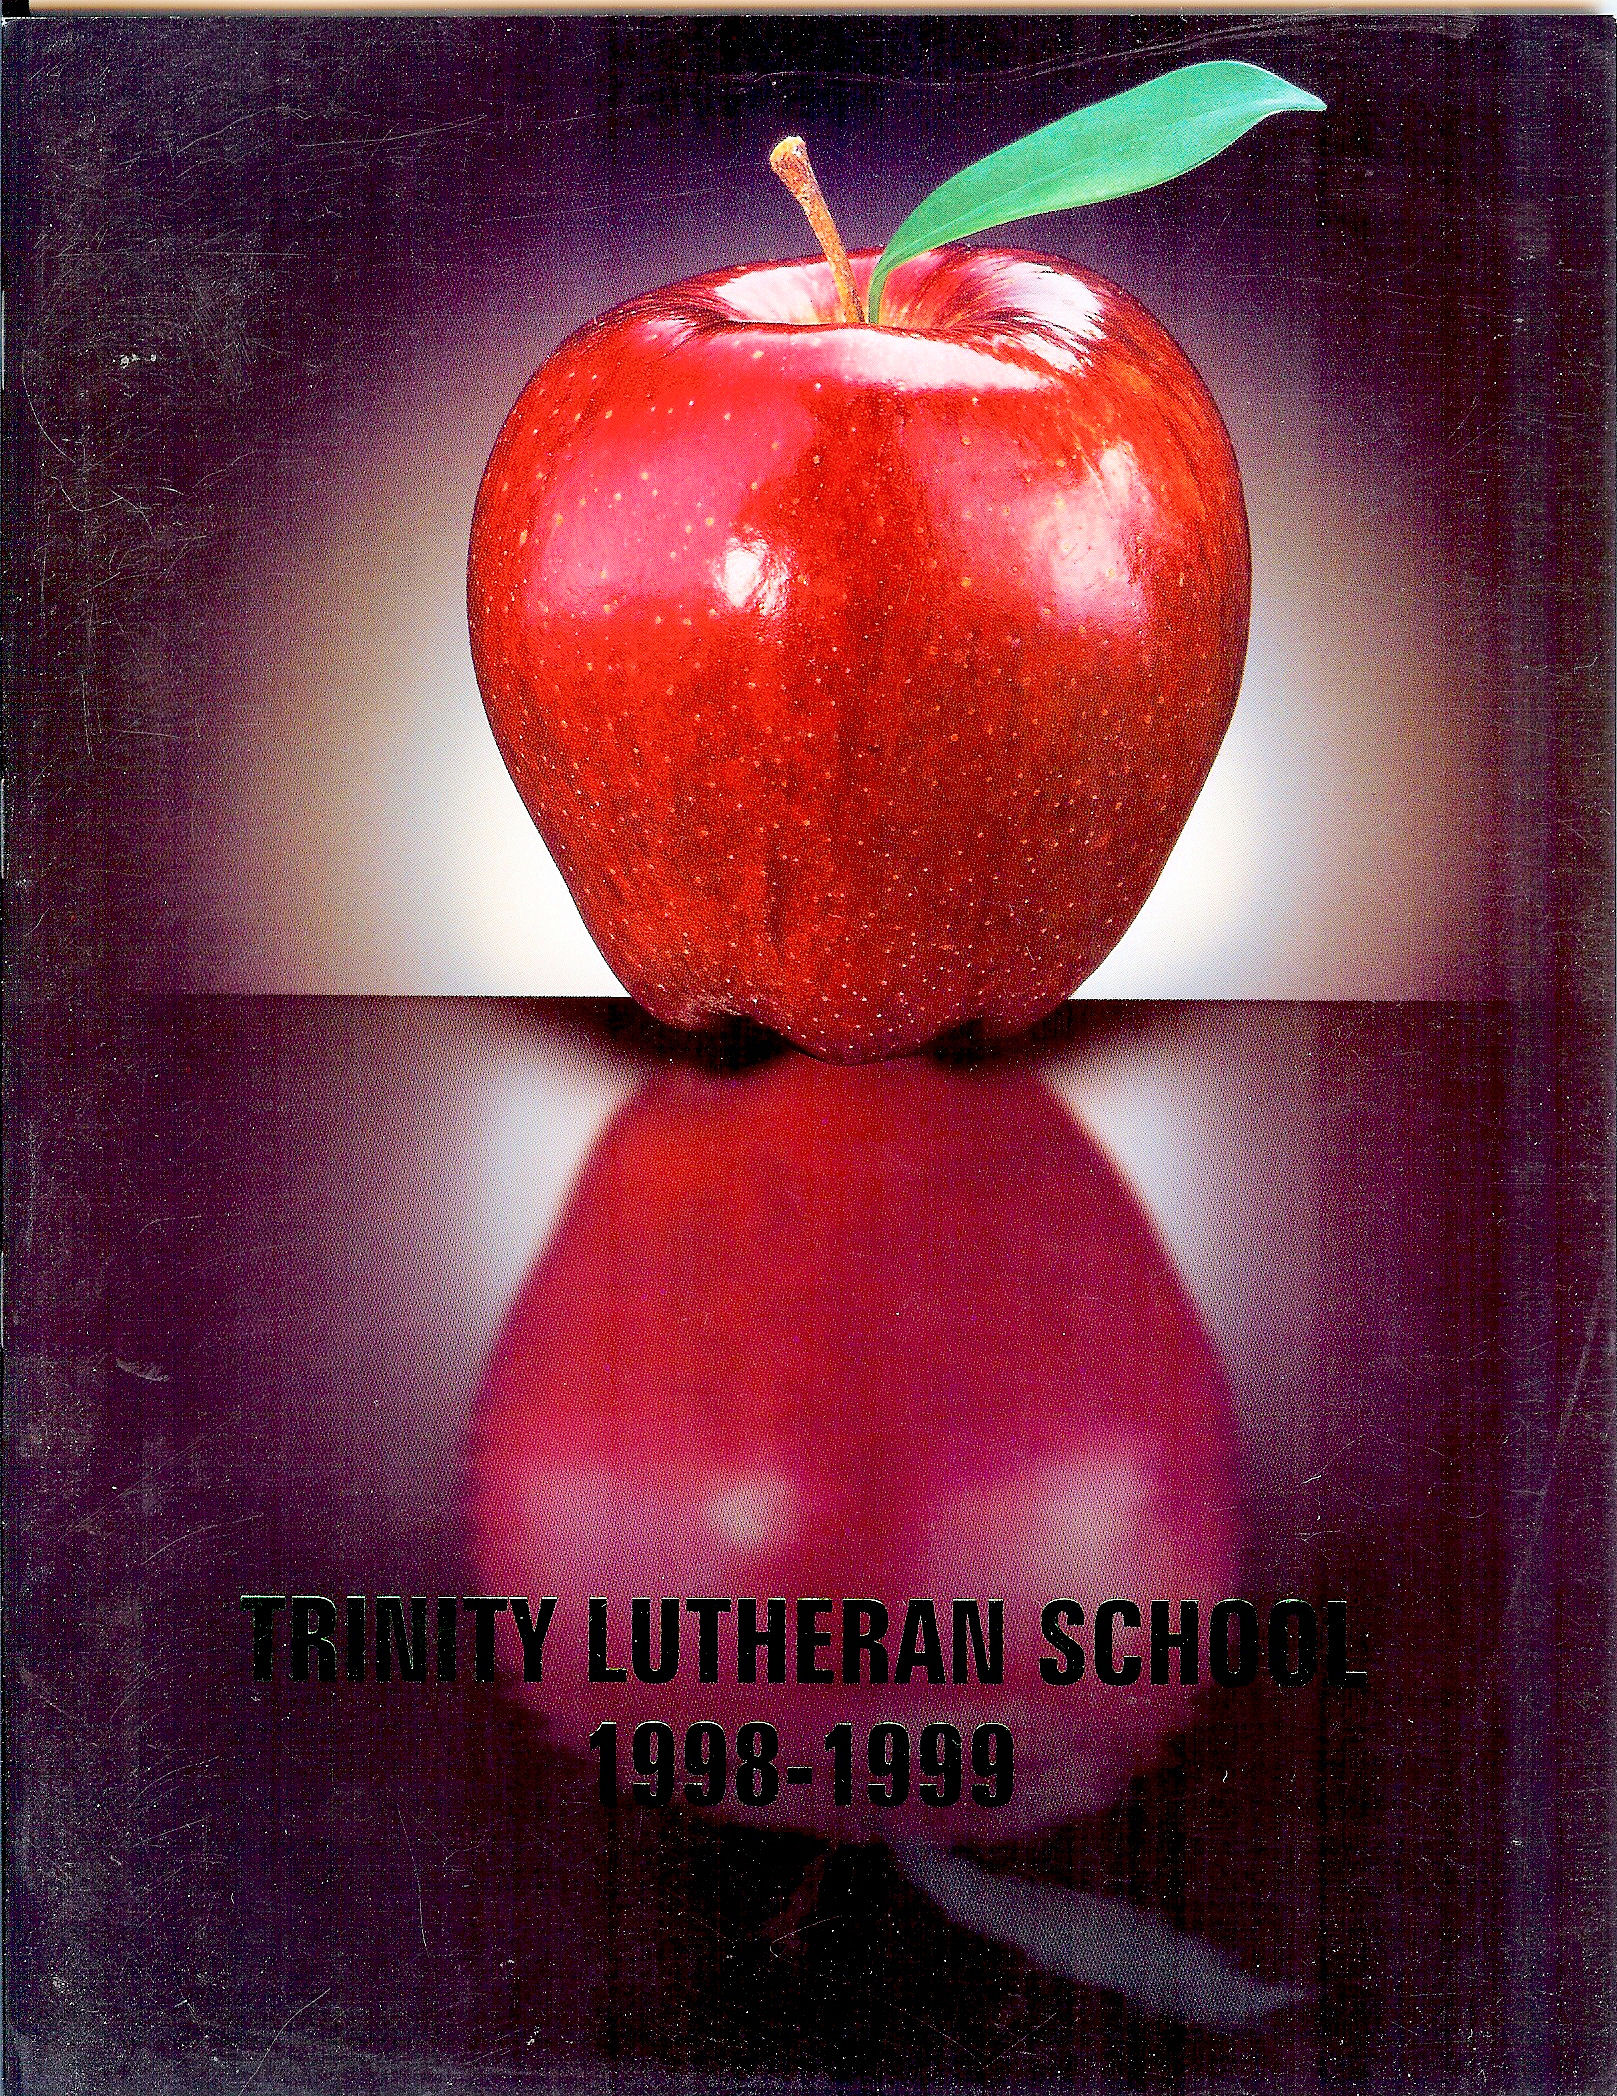 98 - 99 Yearbook Cover